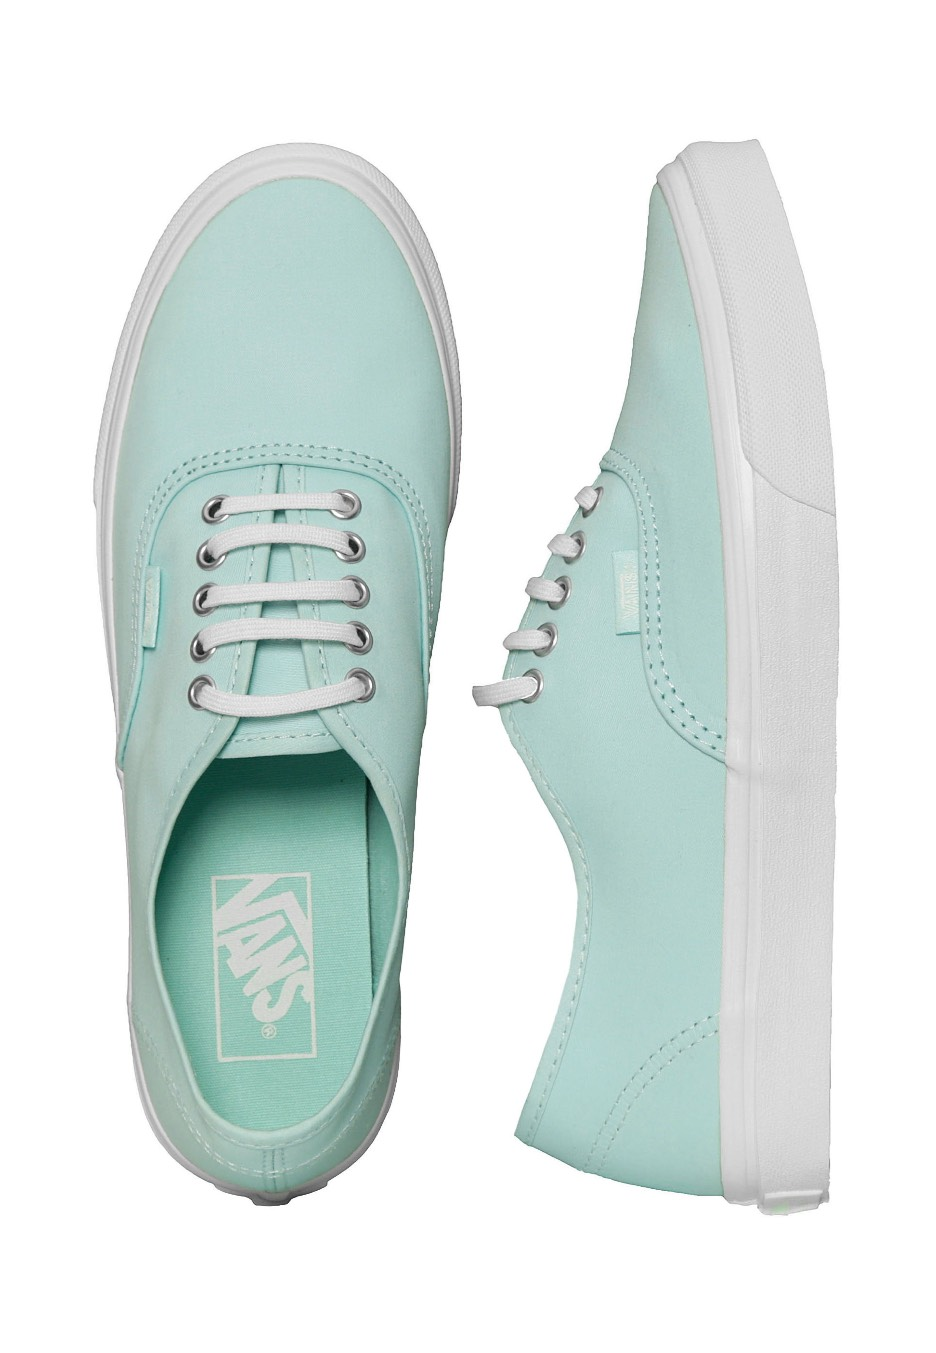 5ee5c46bf7 Vans - Authentic Slim Brushed Twill Blue Light Blanc De Blanc - Girl Shoes  - Impericon.com UK